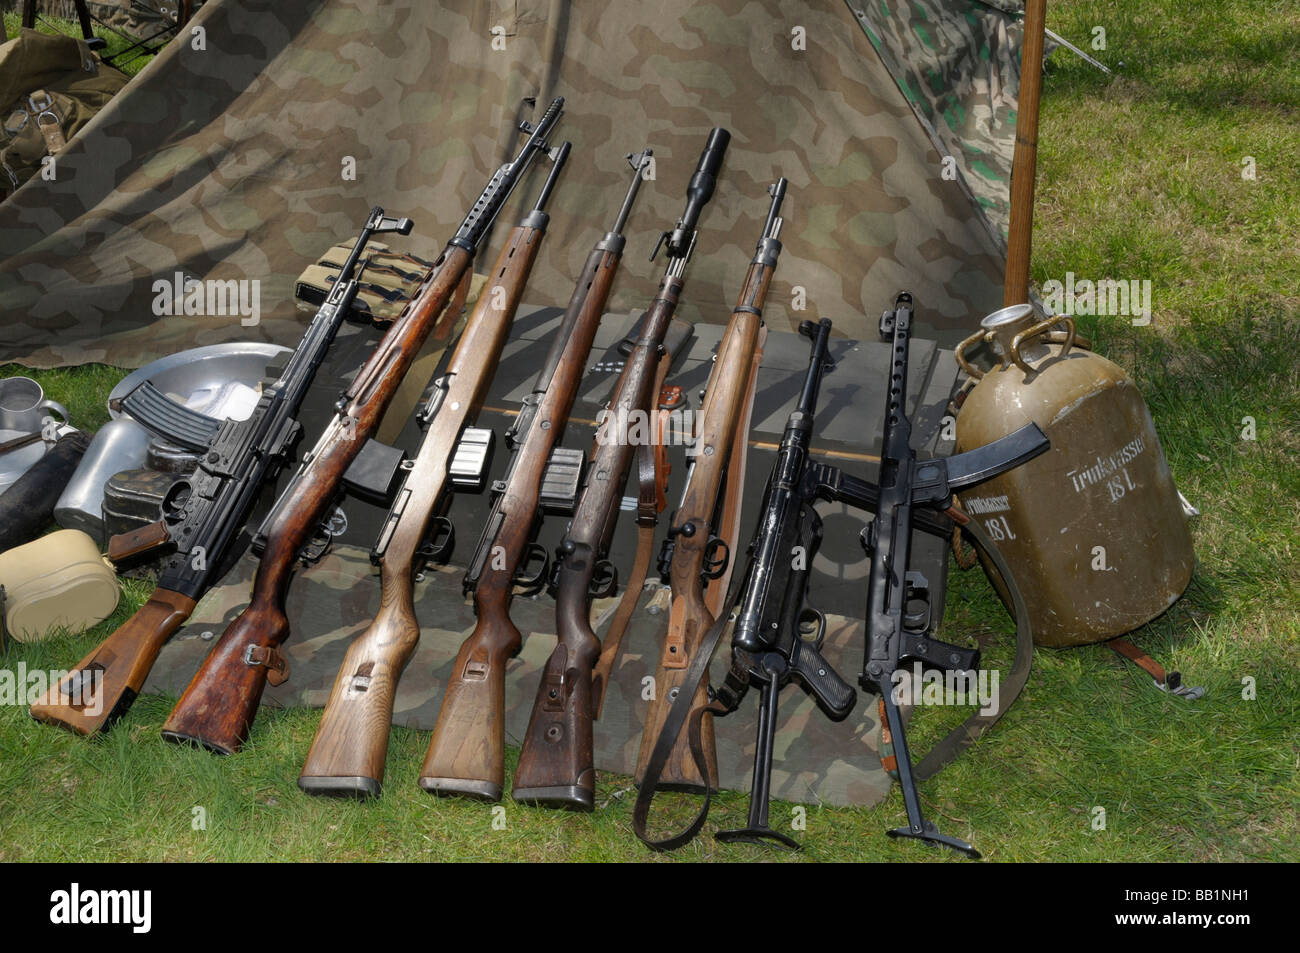 weapons used by the German army during WWII - Stock Image